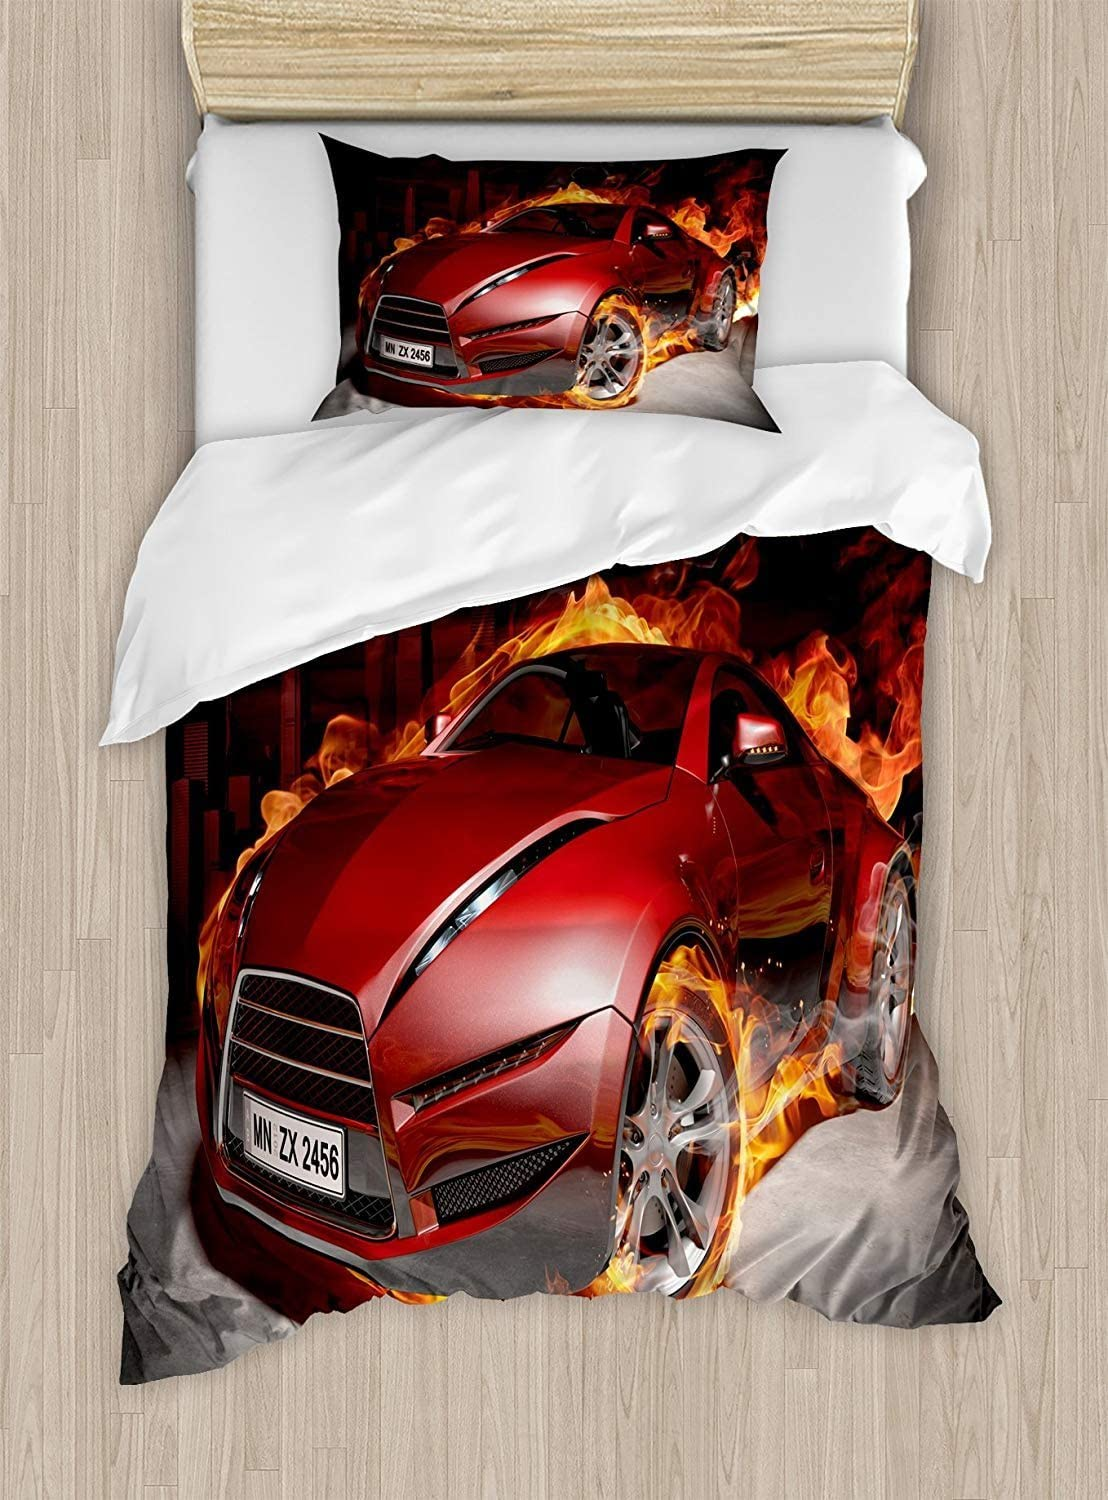 Cars Duvet Cover Sets King Red Car in Tires Sports Inexpensive Flam Free Shipping Cheap Bargain Gift Burnout